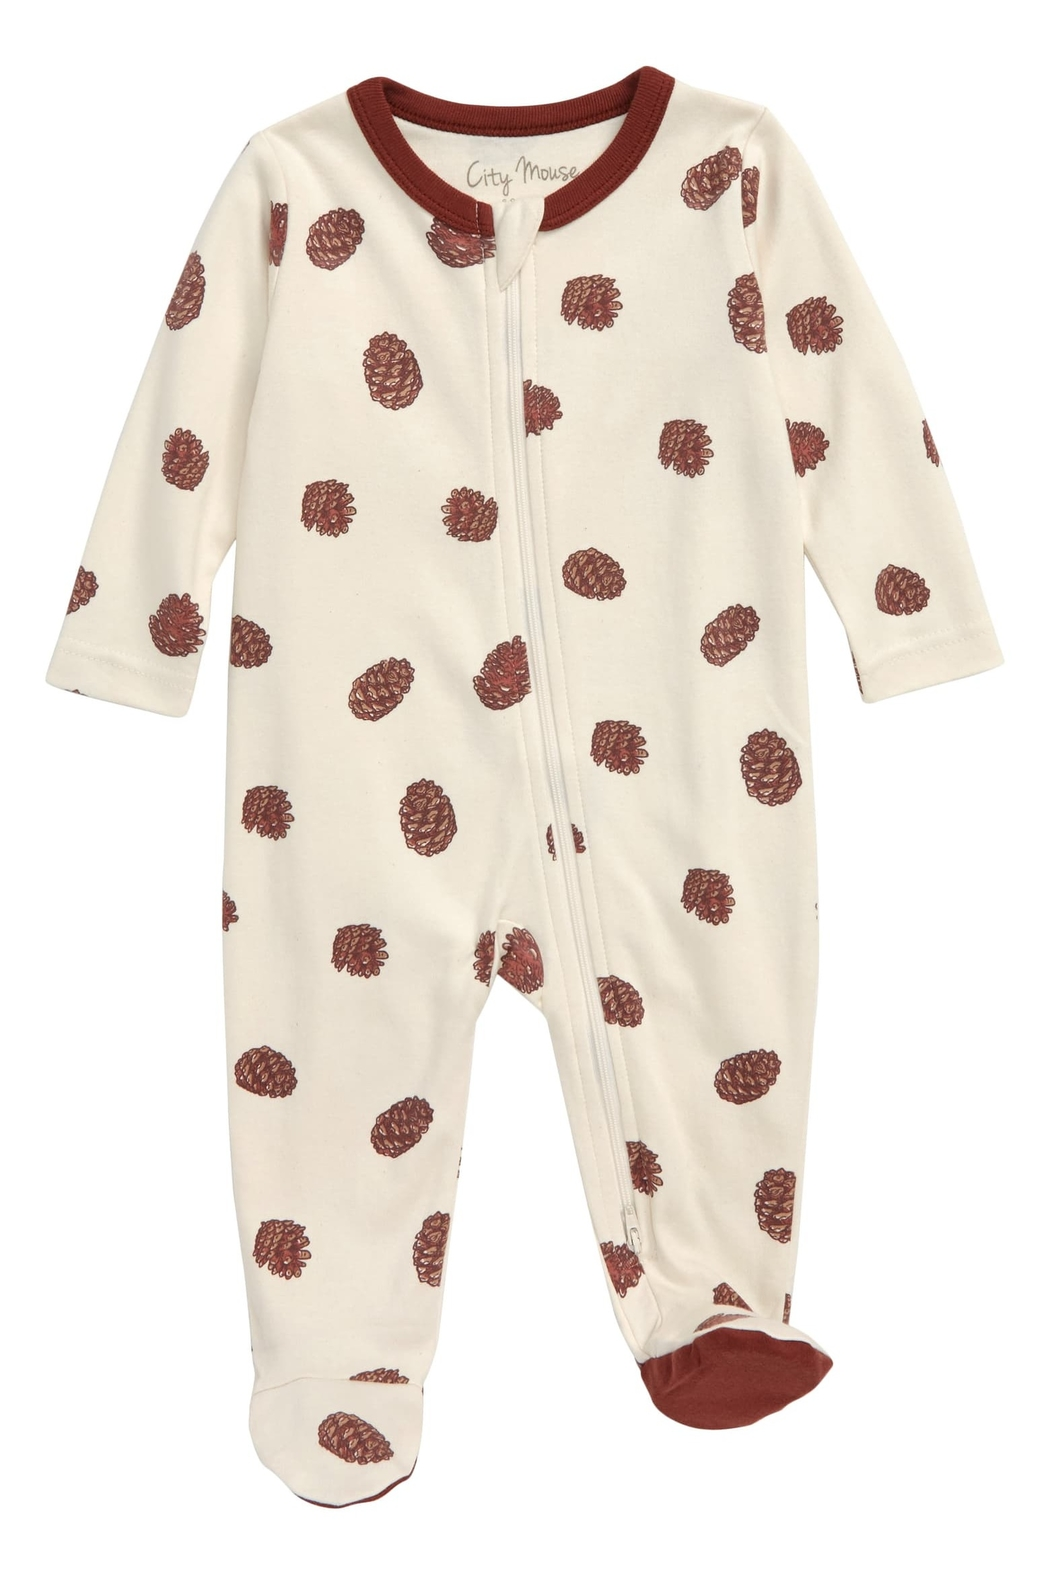 City Mouse Pinecone Footed Zip Romper - Main Image